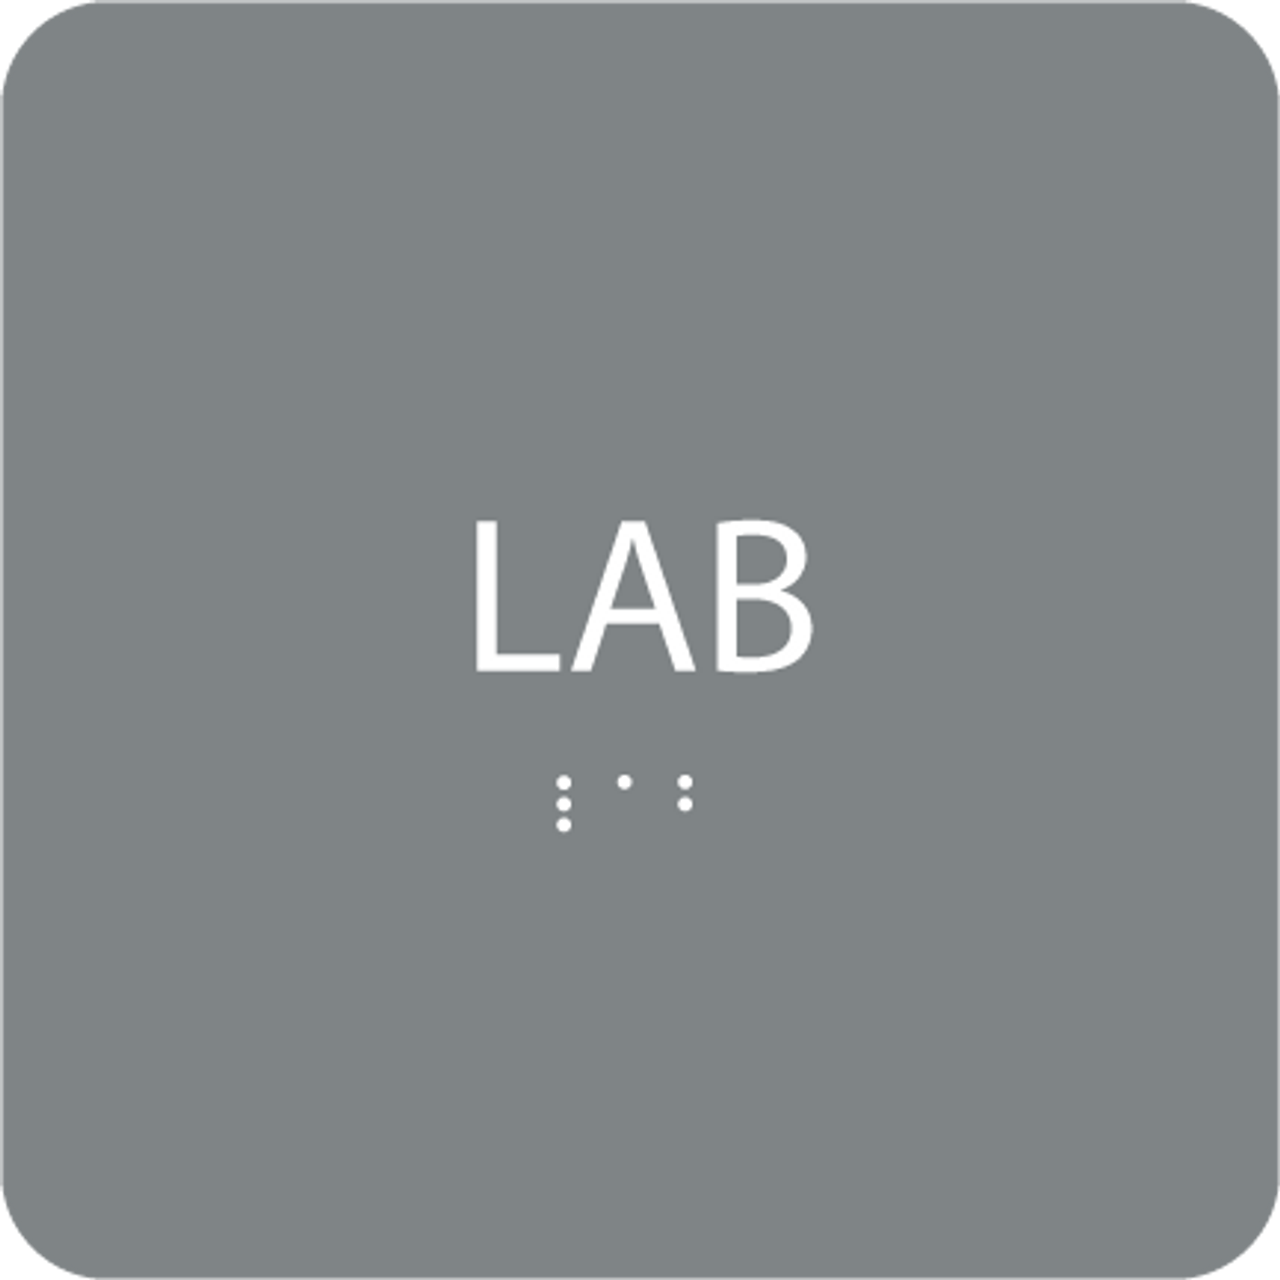 Grey Lab Tactile Sign